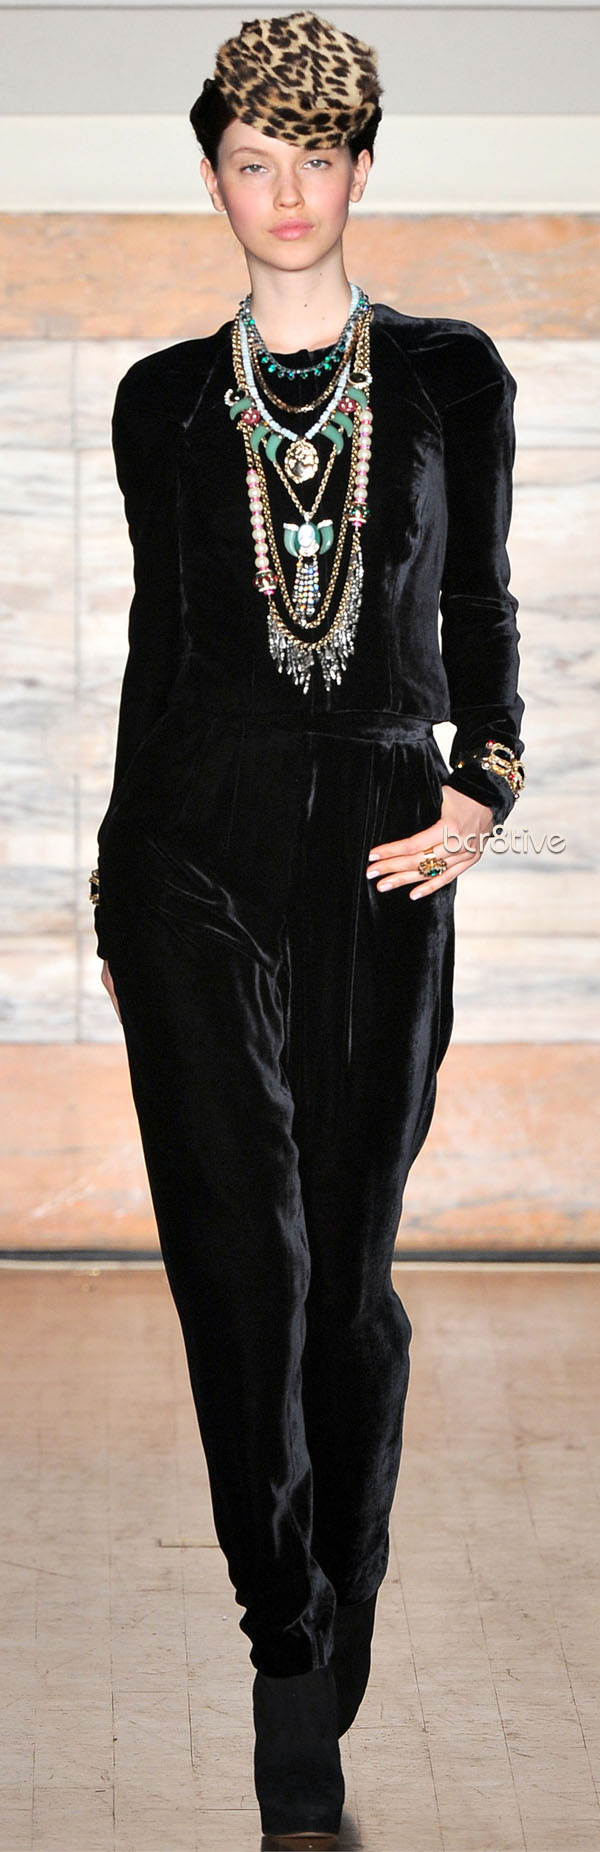 Temperley London Fall Winter 2012-13 Collection _015